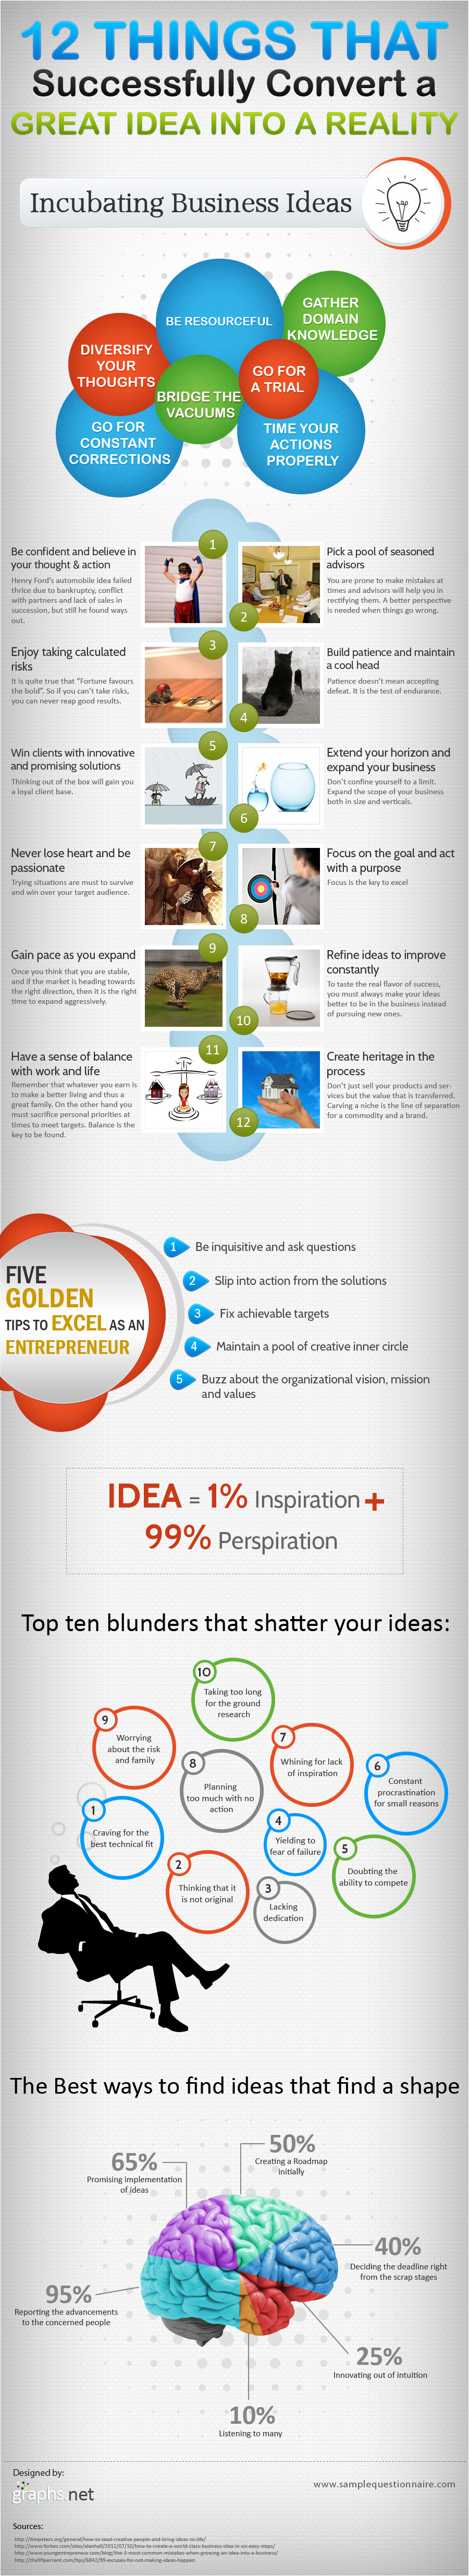 Ways to Convert a Great idea Into Reality